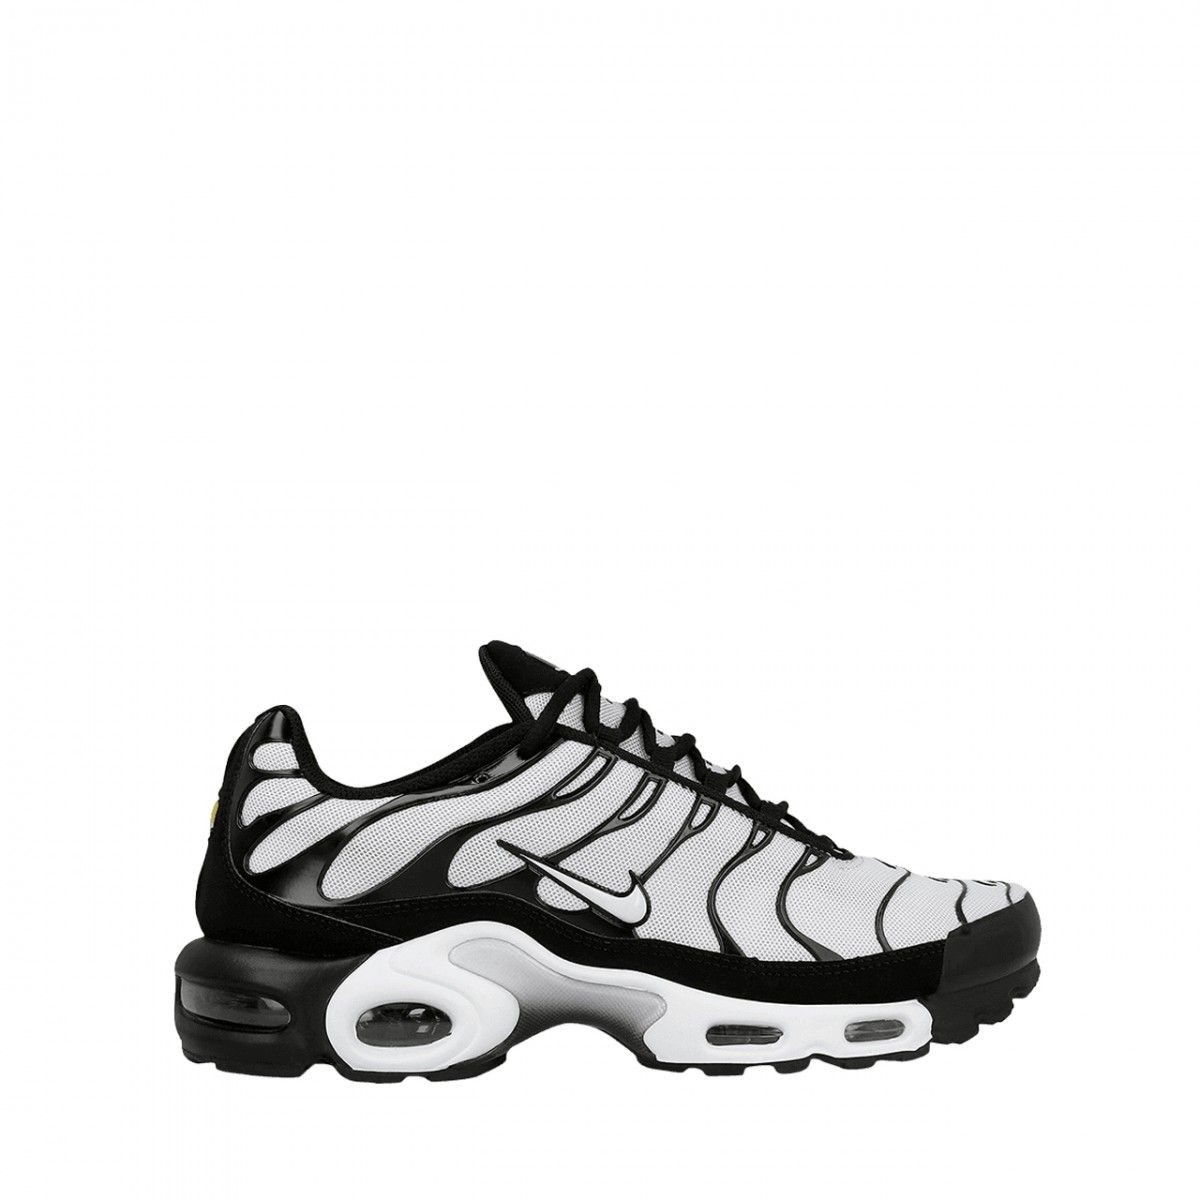 Basket Nike Air Max Plus Tn 852630 032 Taille : 40 12